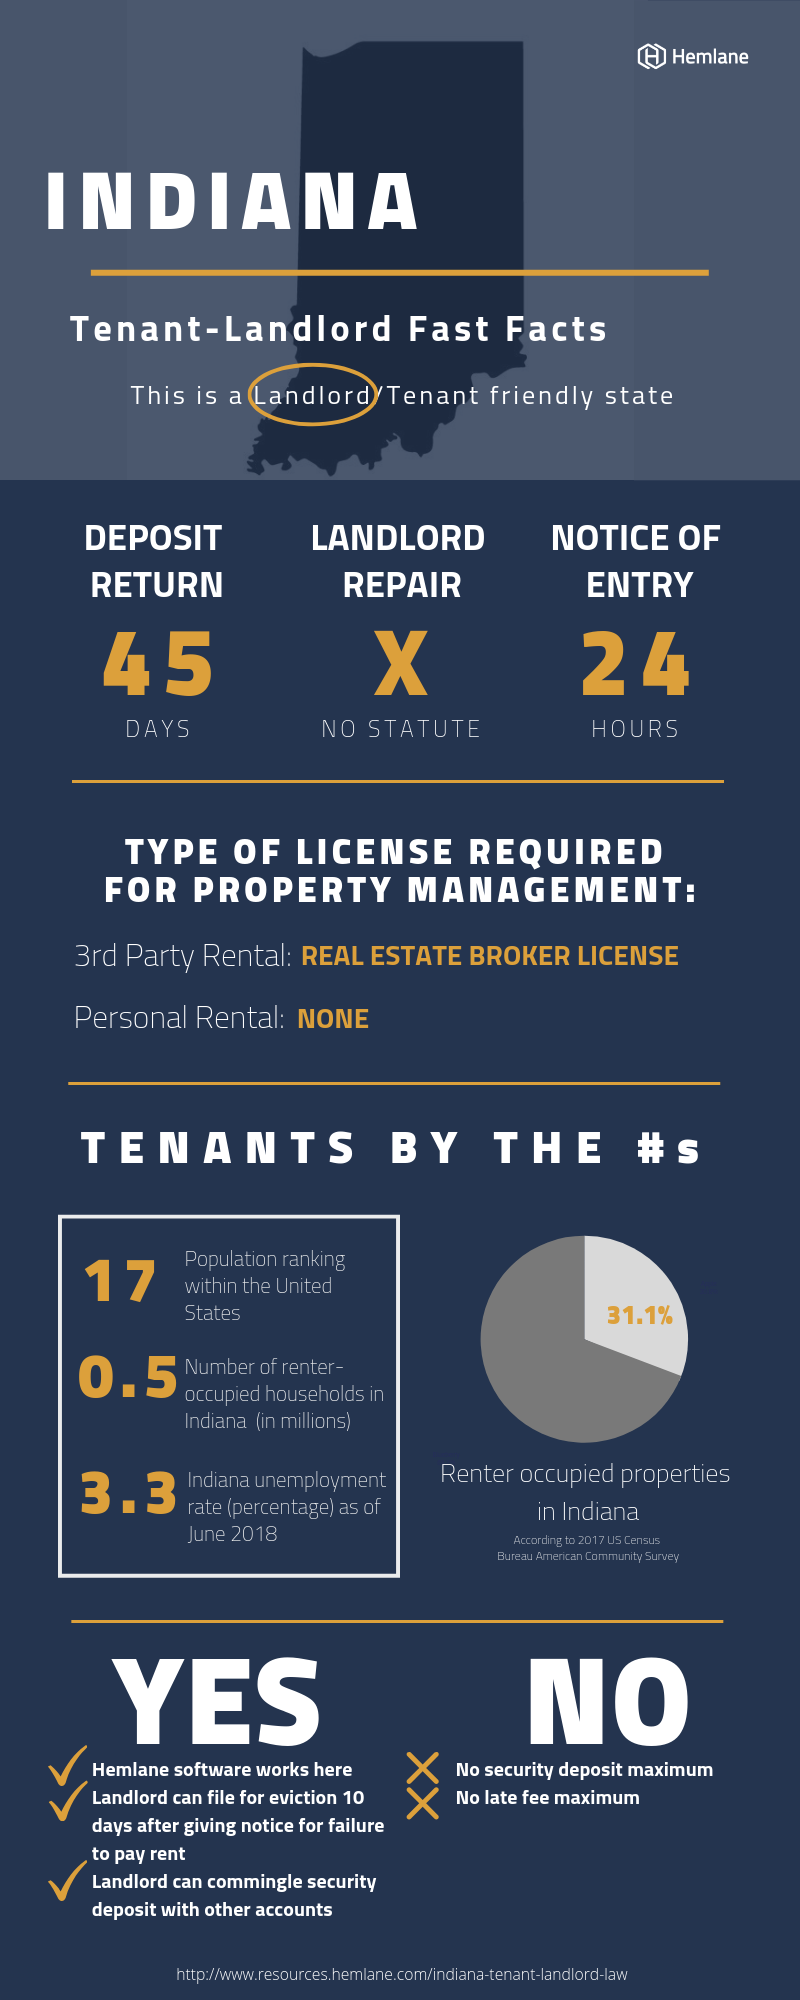 Indiana-Tenant-Landlord-Law-Fast-Facts